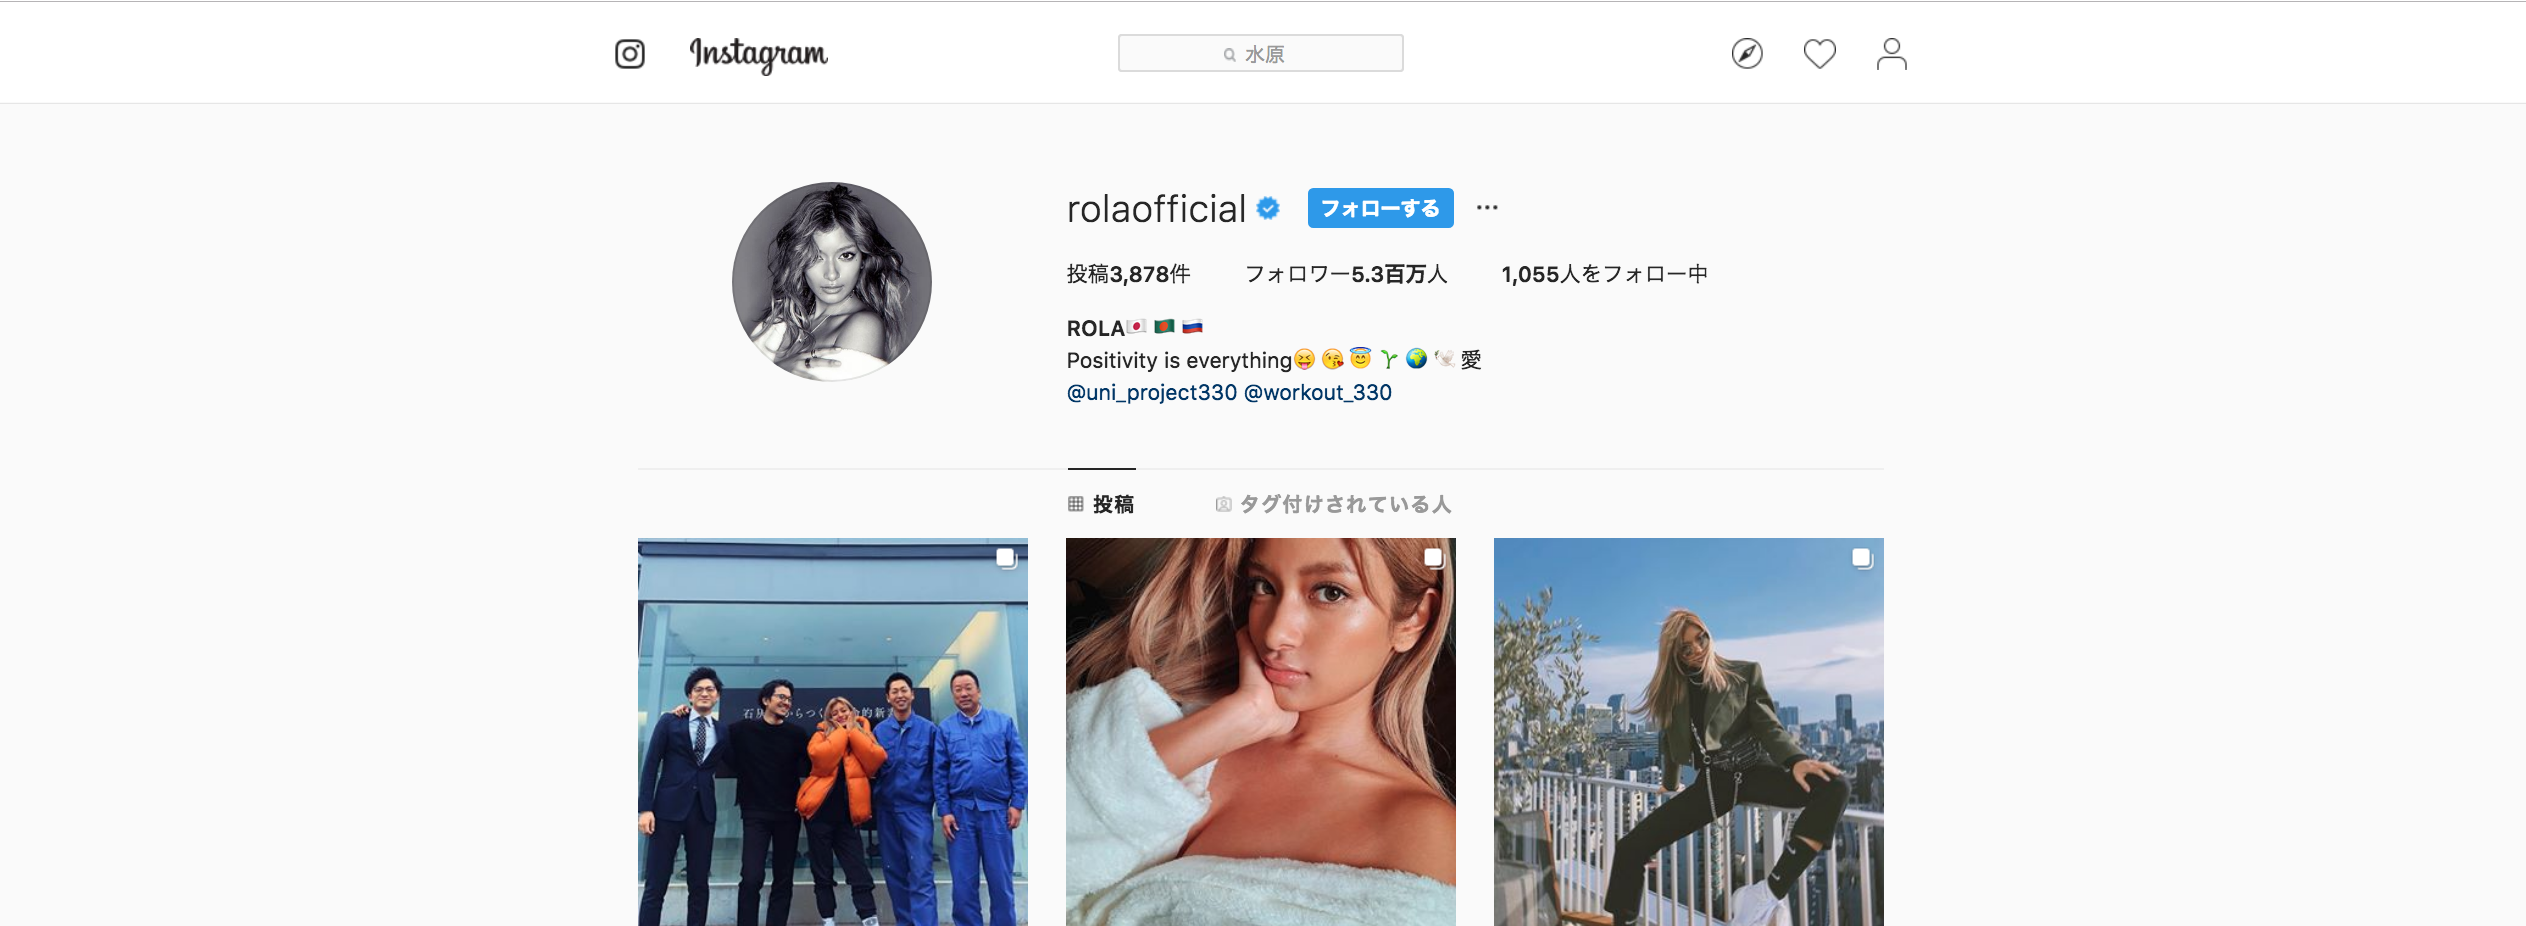 ROLA:jp:??🇷🇺 (@rolaofficial) • Instagram photos and videos